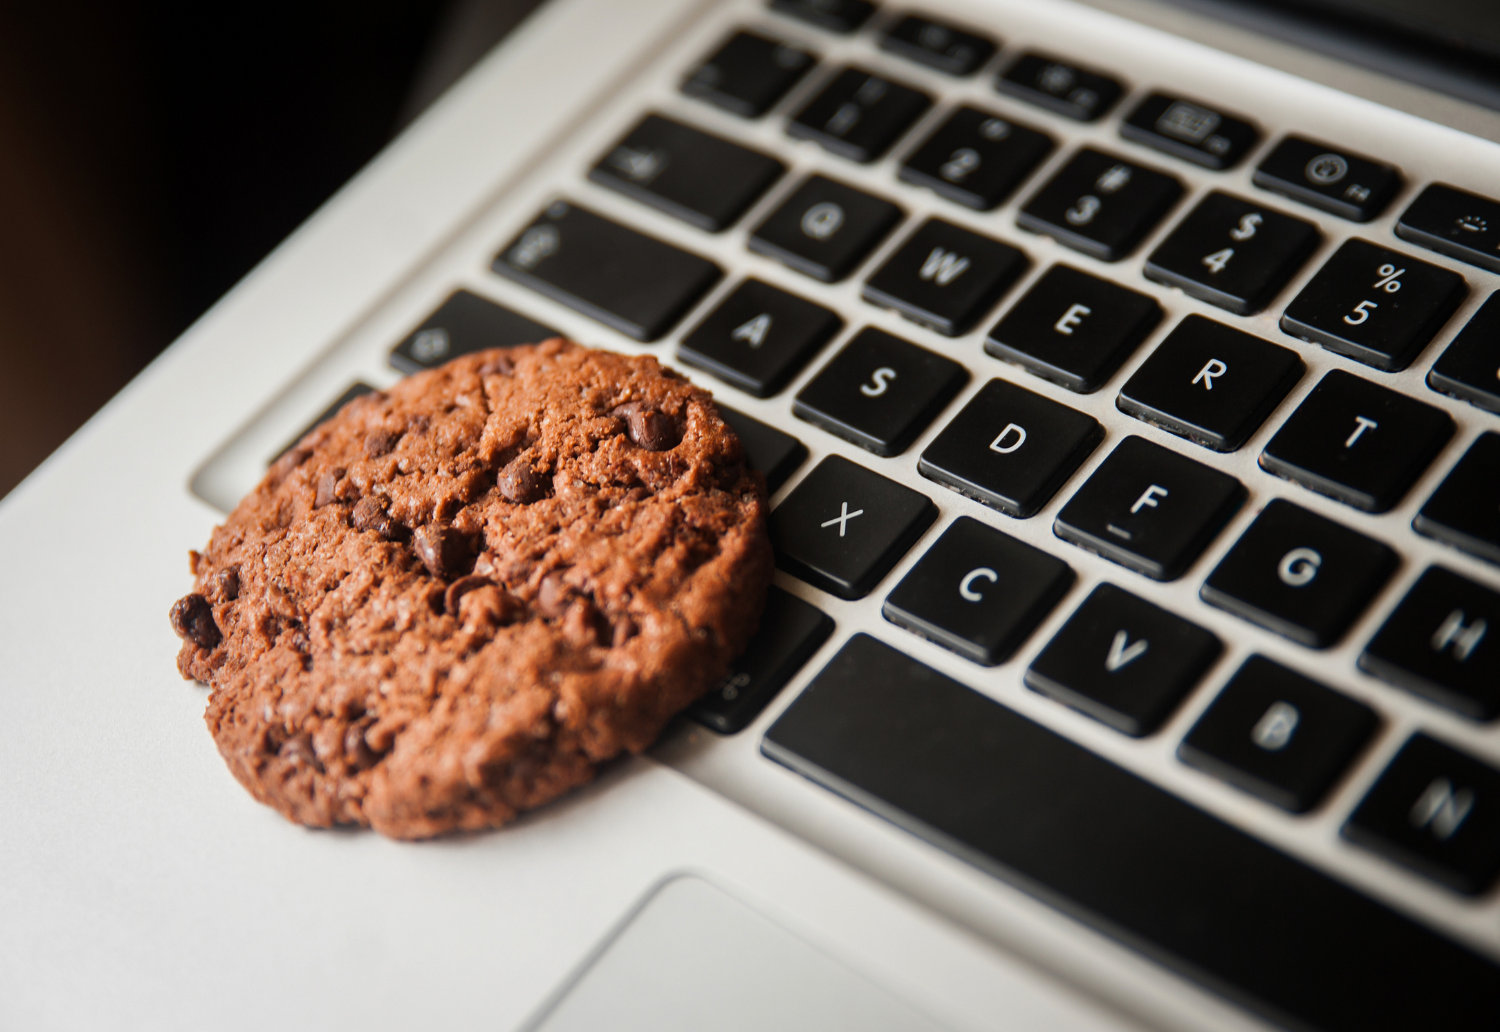 What will Google's changes to cookies mean for marketers?